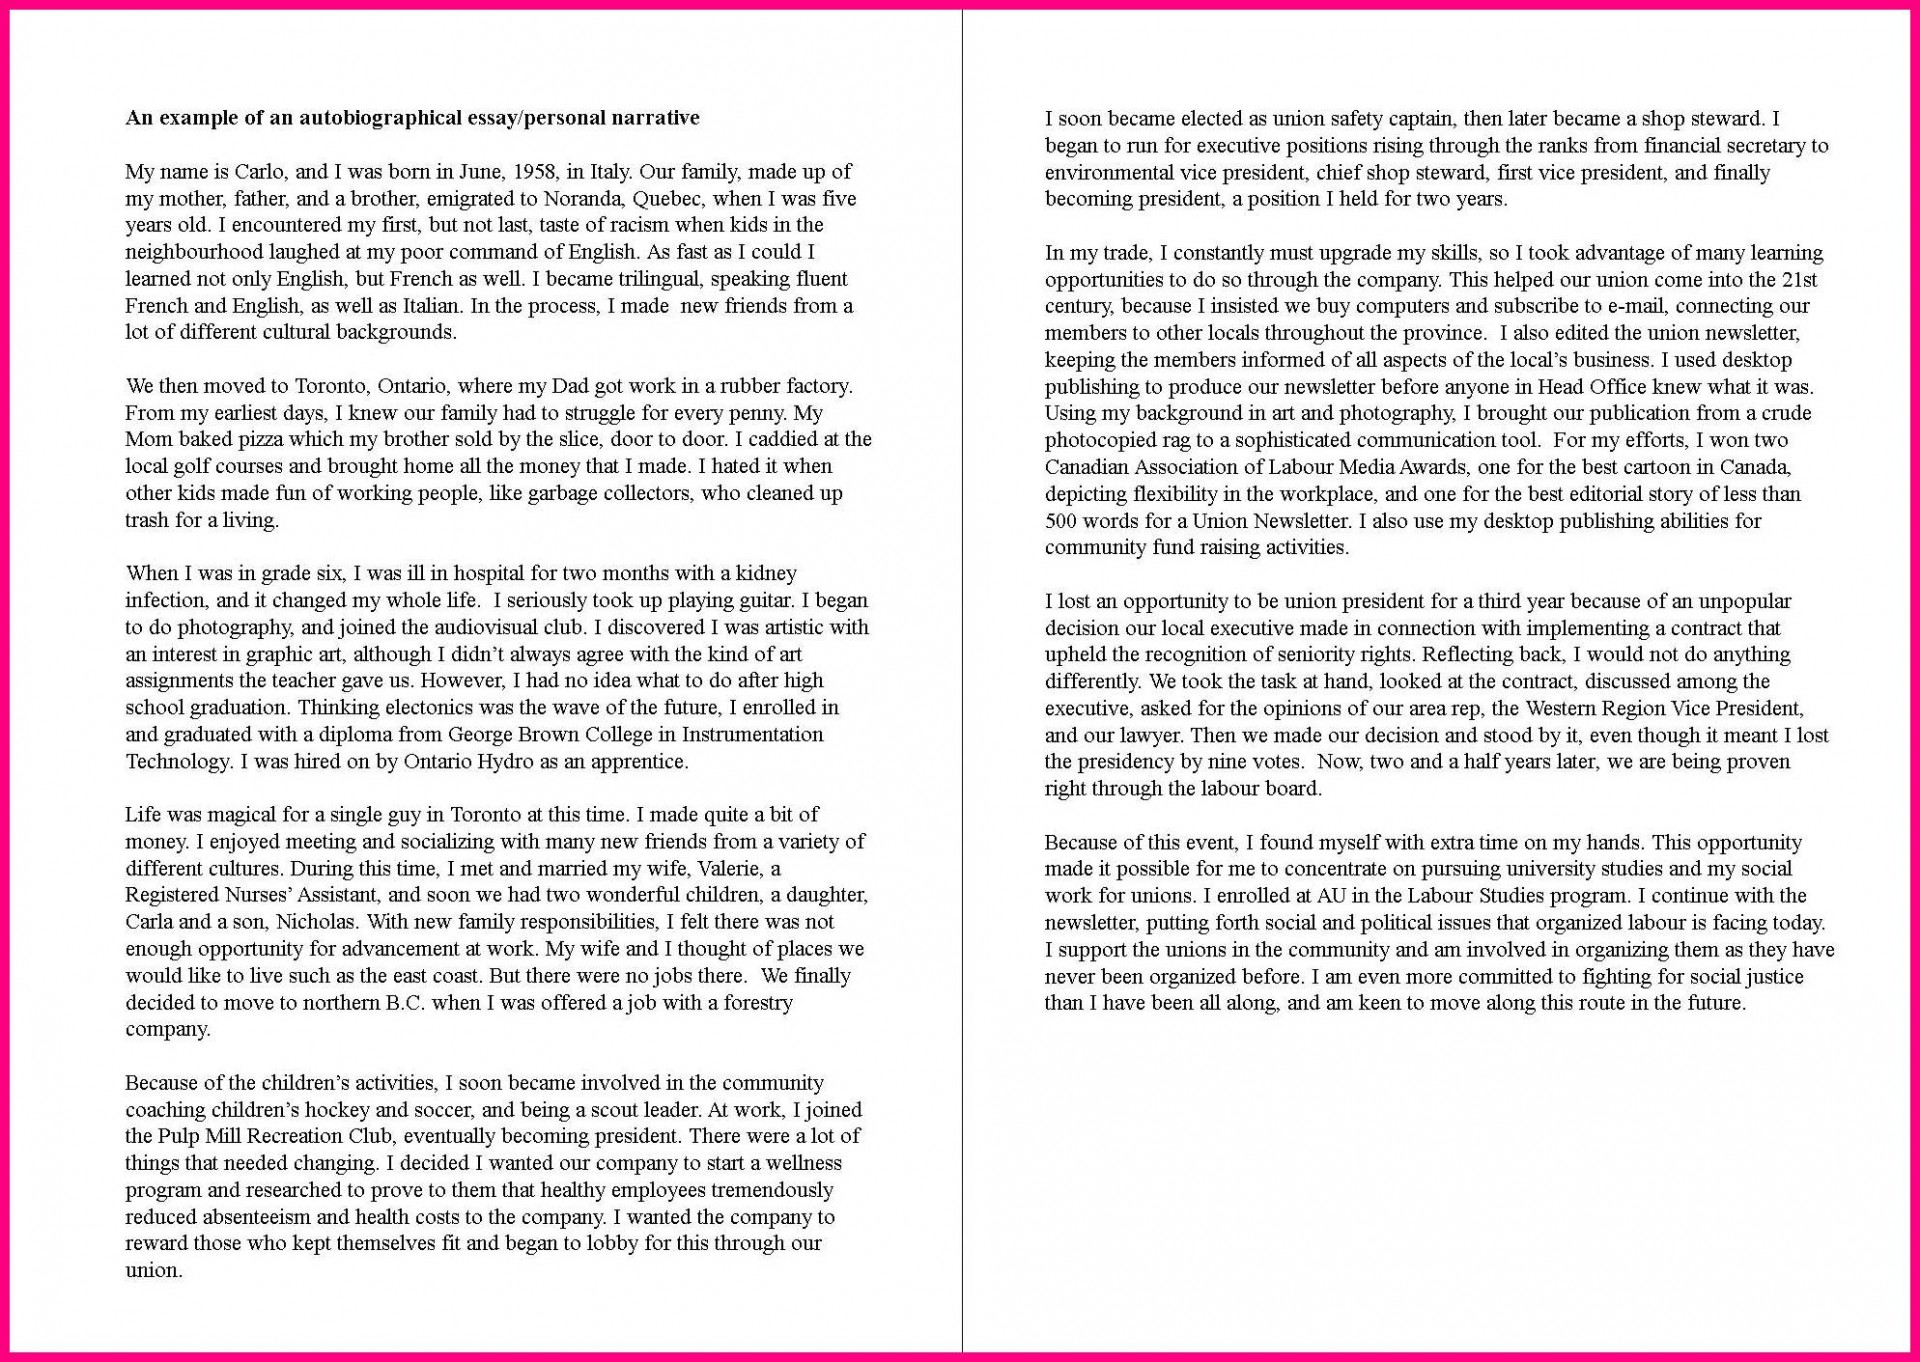 005 Autobiography Essay Example Family Background Sample Autobiographical Unique Pdf Examples For College 1920